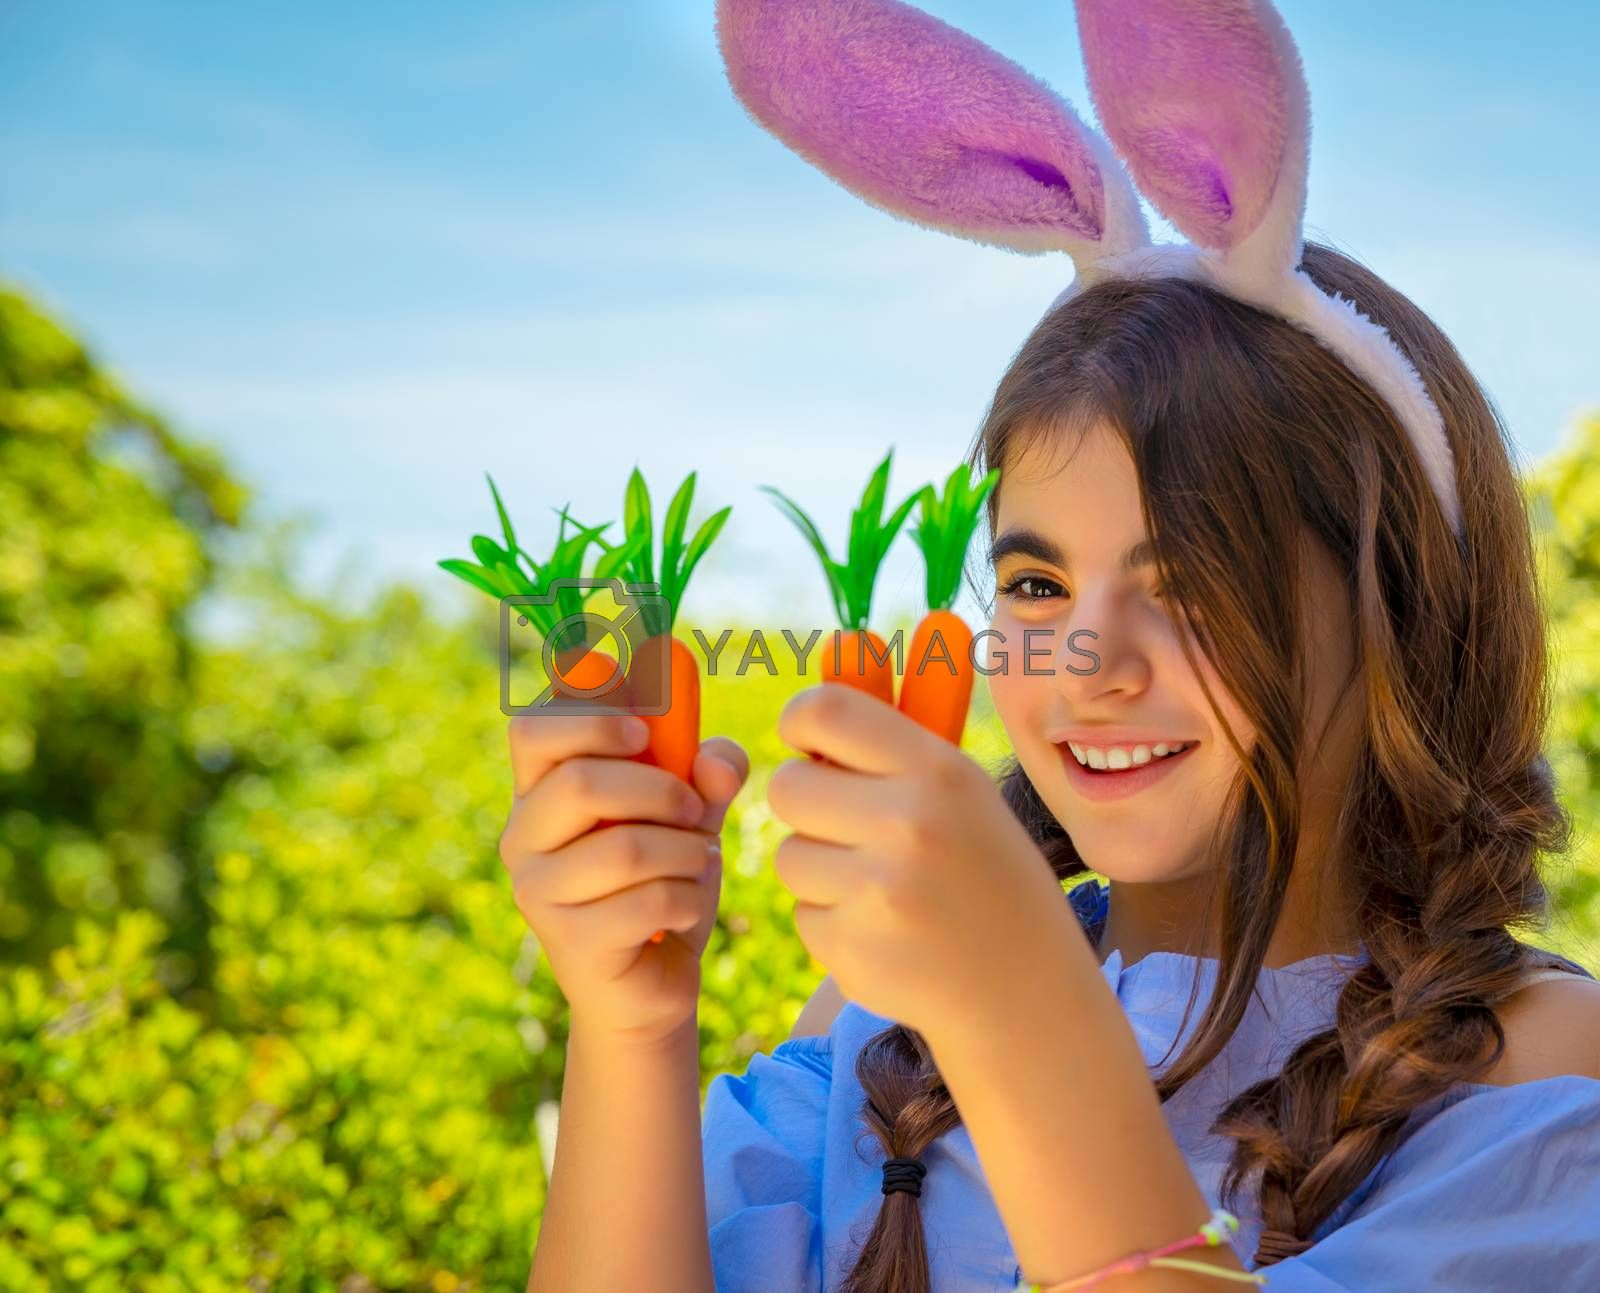 Portrait of a cute little bunny girl with carrots in hands enjoying Easter, having fun gardening in the yard on a spring sunny day, traditional outfit for Easter celebration, happy holiday